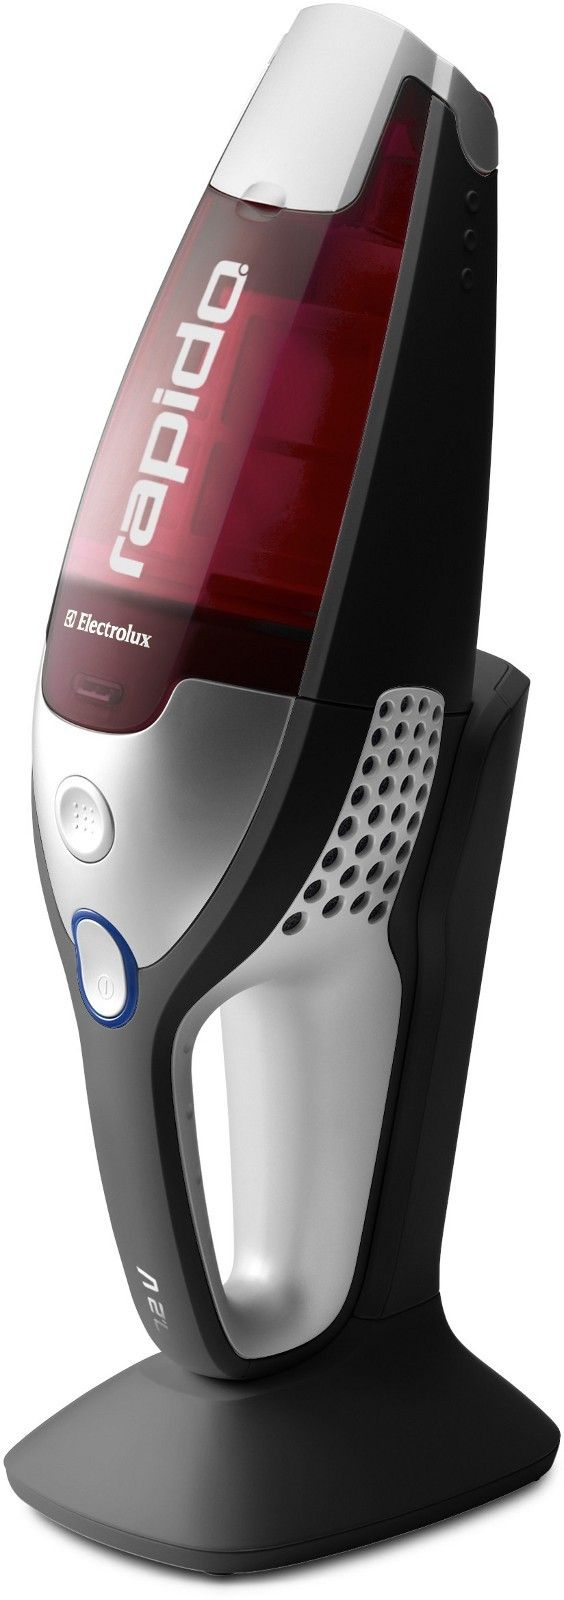 What is the best handheld vacuum cleaner reference com - 17 Best Images About Vacuum Cleaners On Pinterest Behance For Sale And Pets